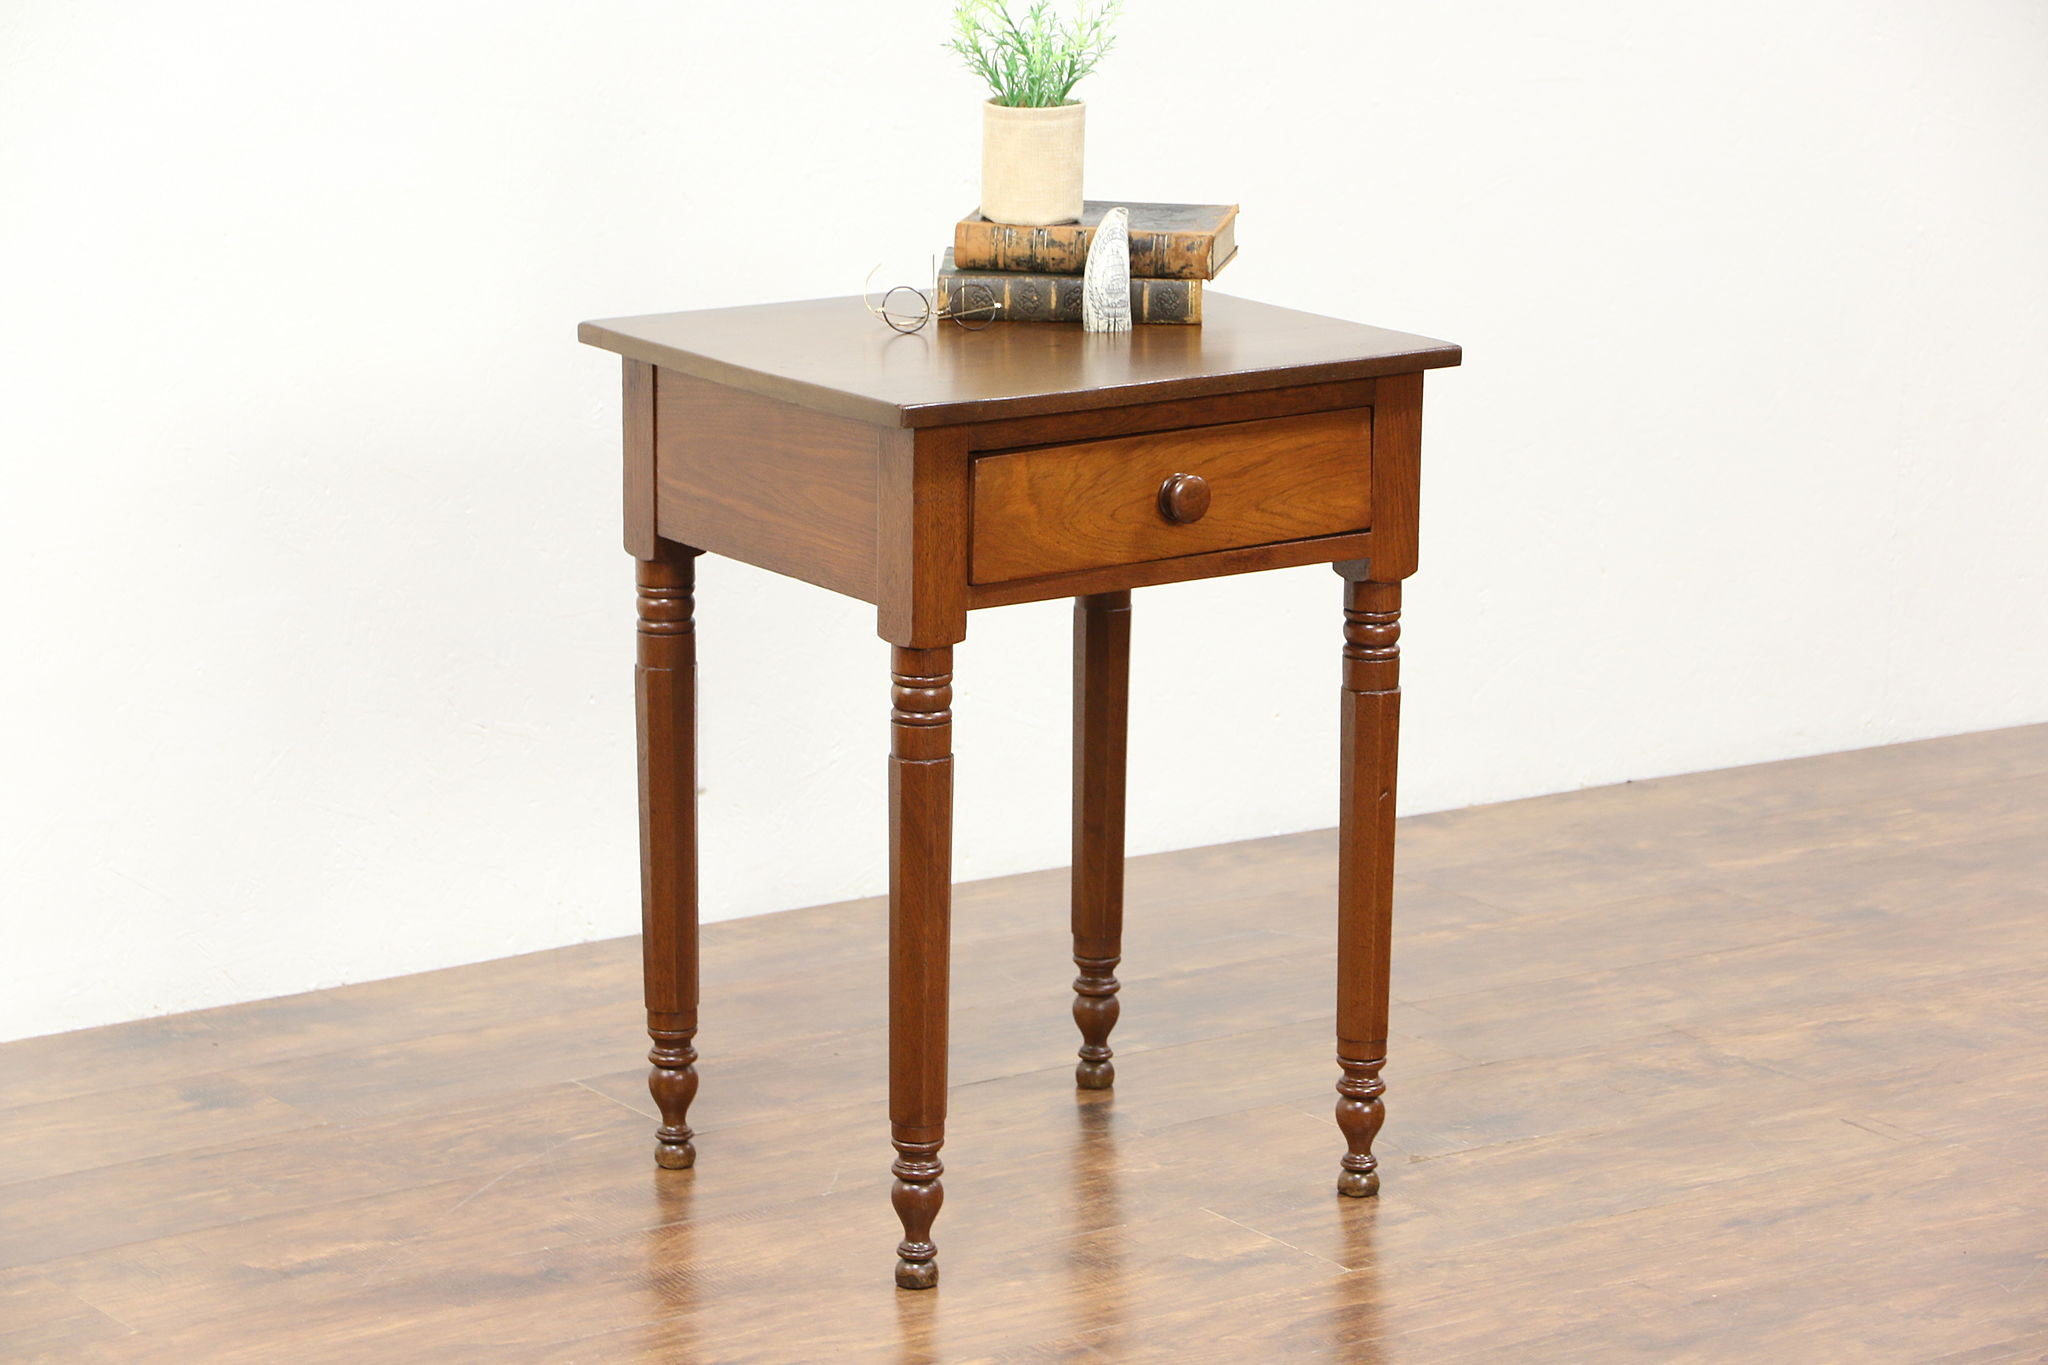 Charmant Walnut 1840 Antique Nightstand, Lamp Or End Table, Octagonal Legs